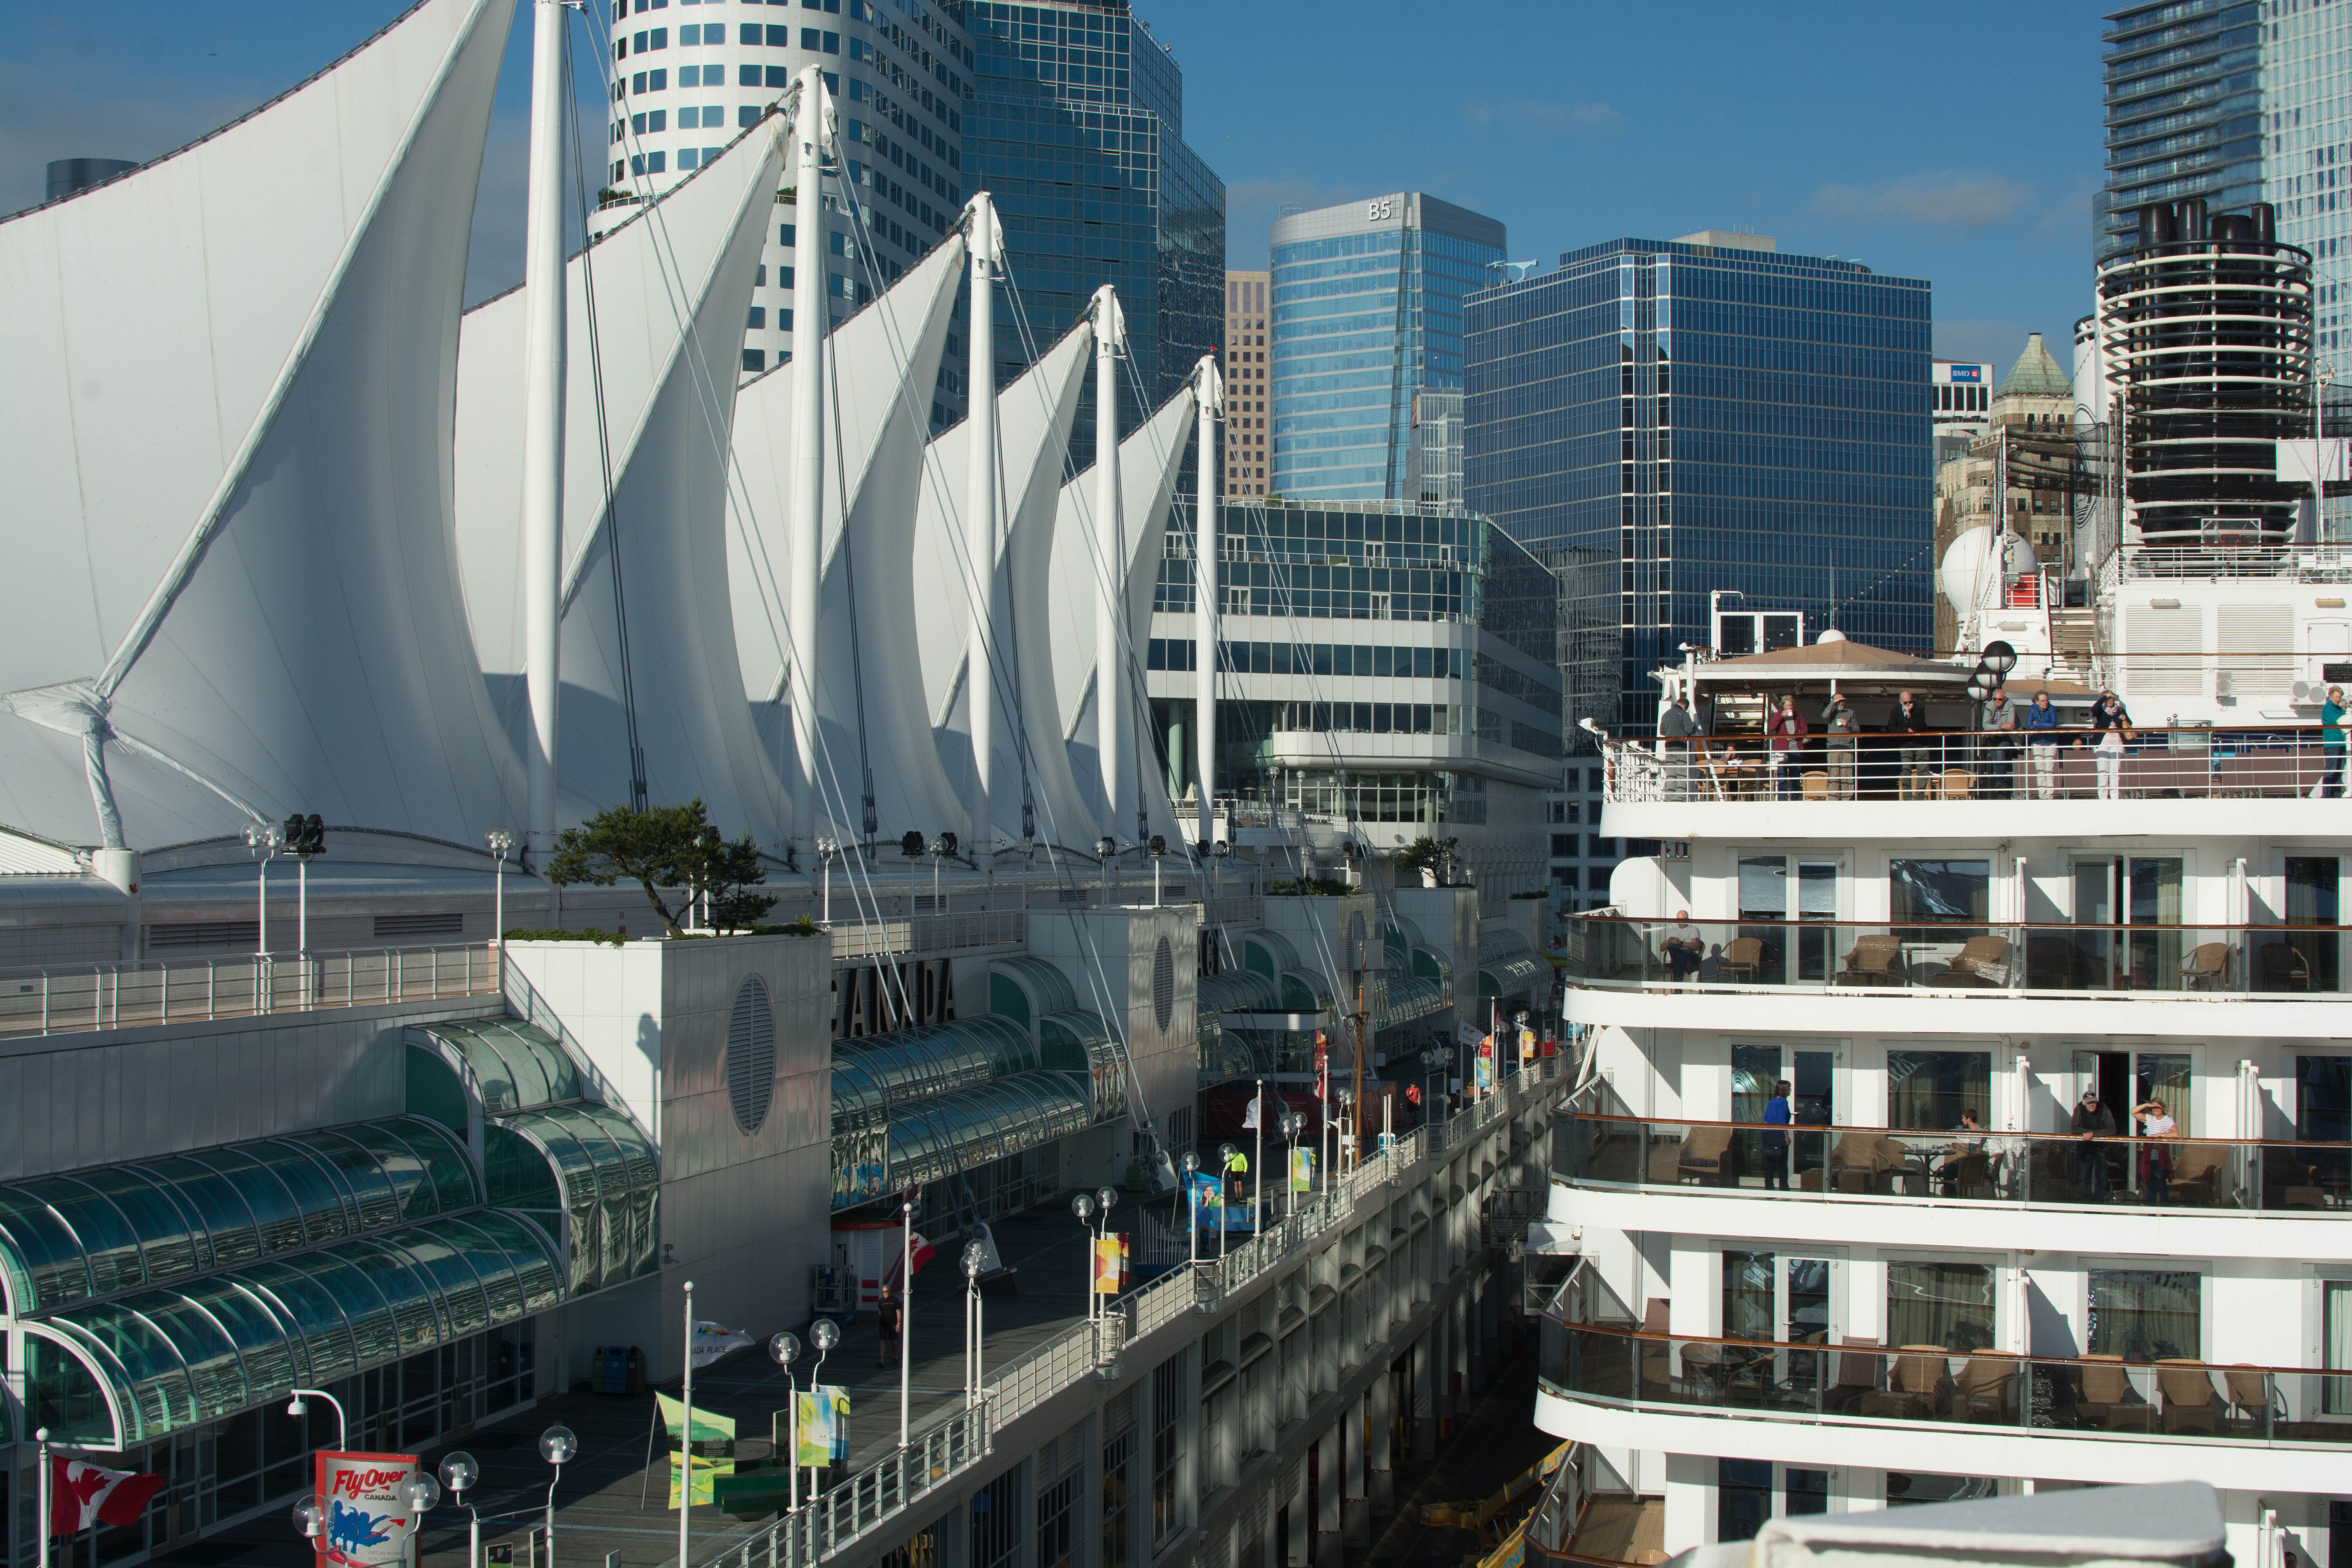 Canada Place and the Aft-end of the MS Noordam